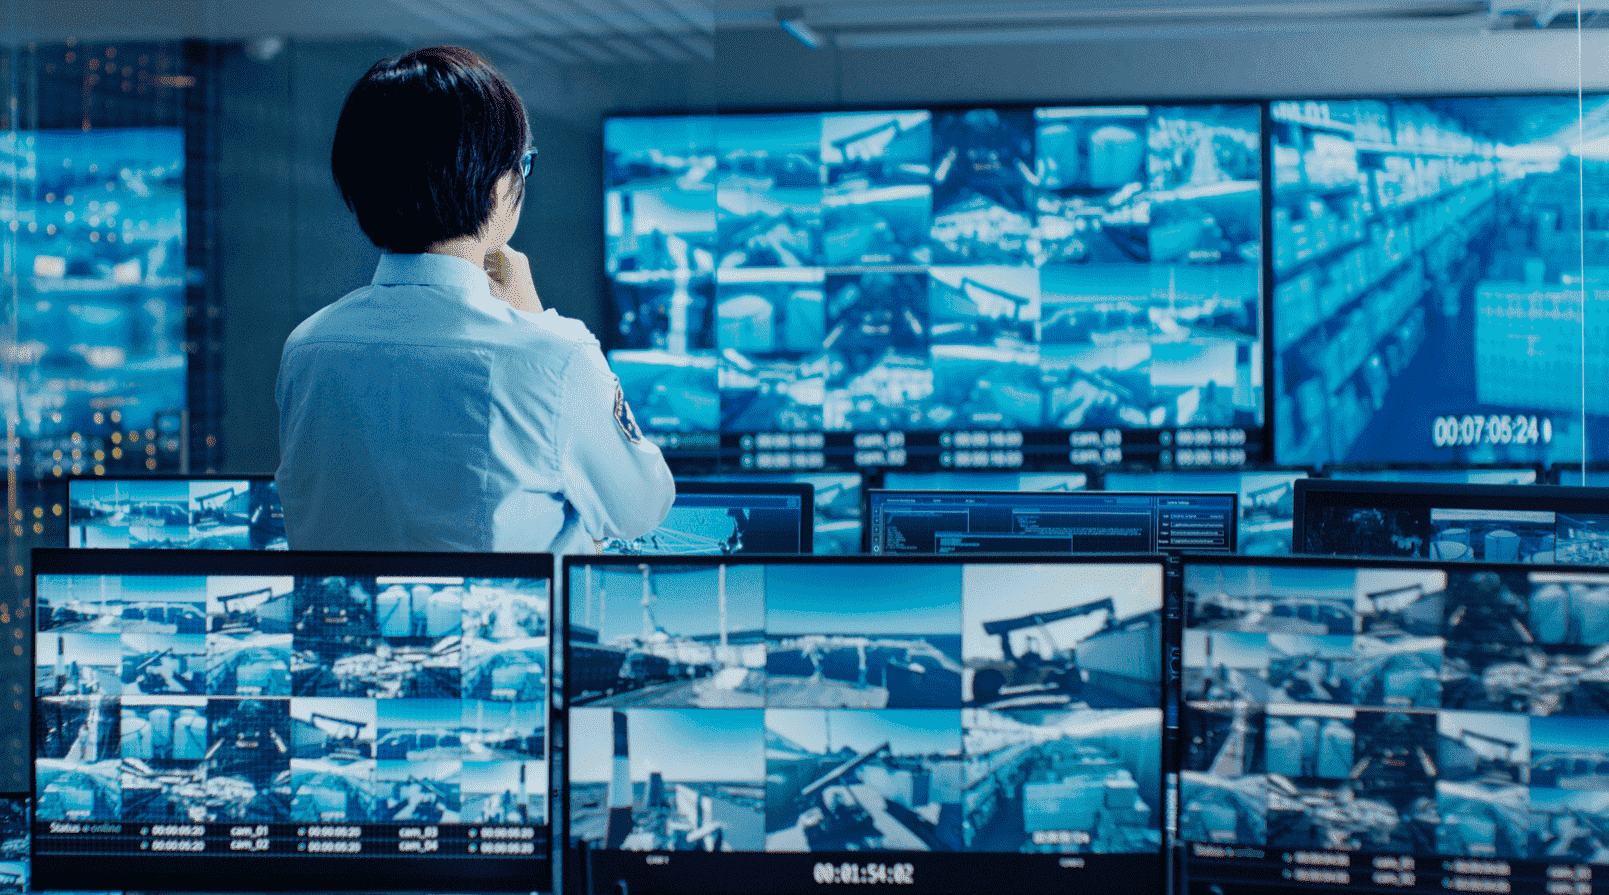 Cameras for Business Security and Key Facts of Video Surveillance Systems